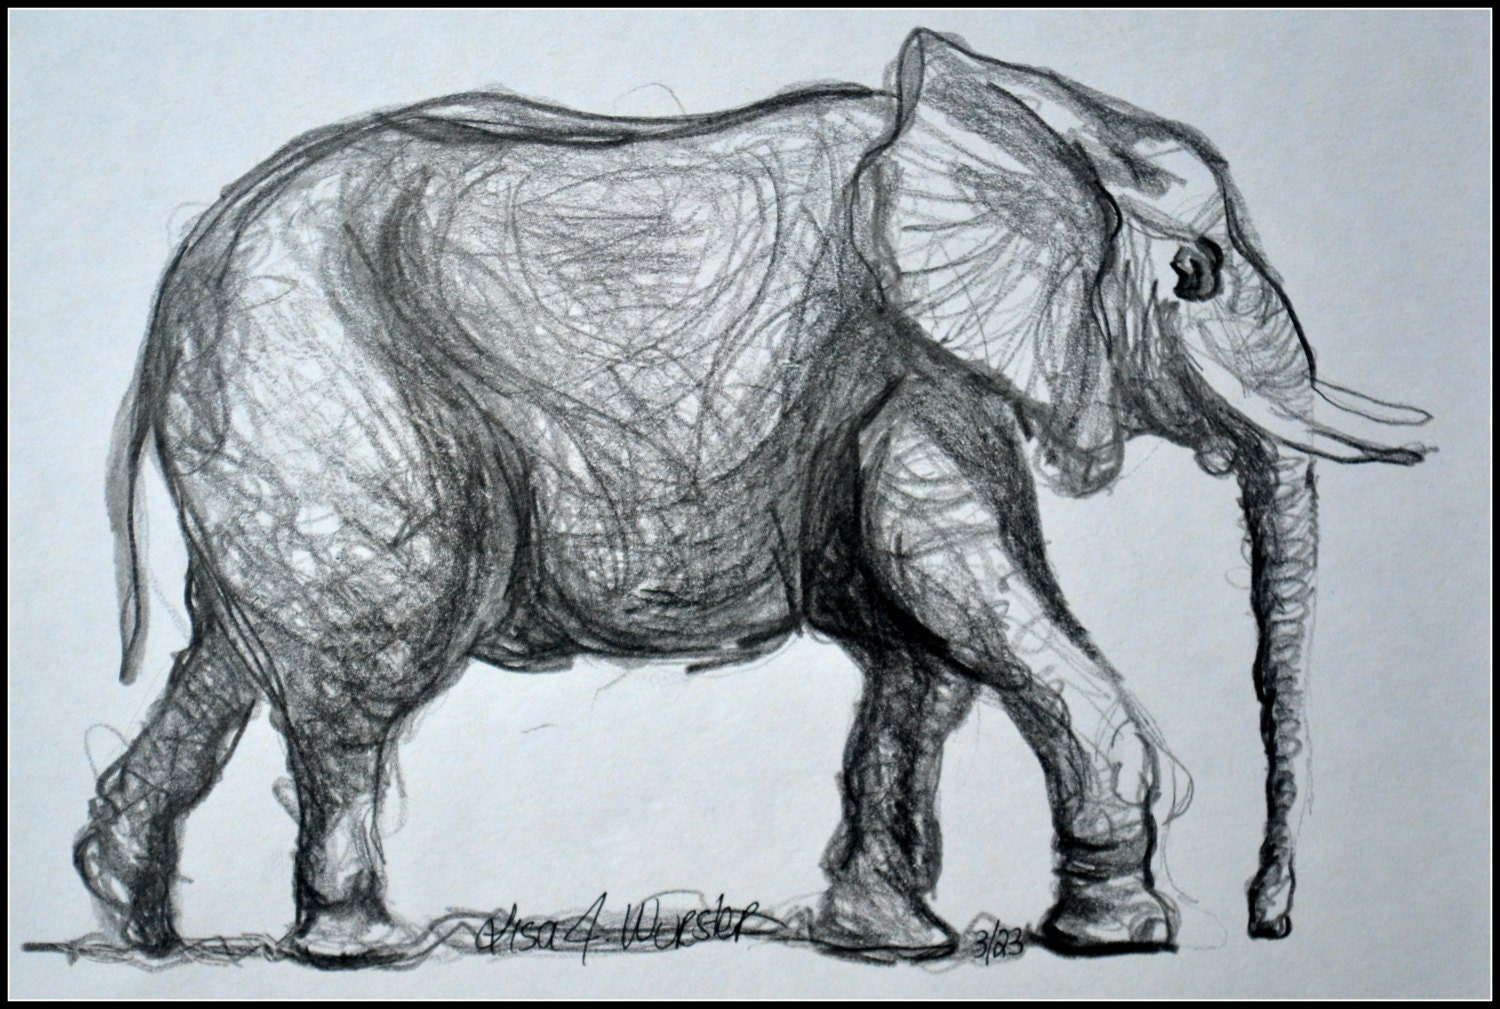 Pencil Drawings Of Elephants Elephant pencil drawing Pencil Drawings Of Baby Elephants